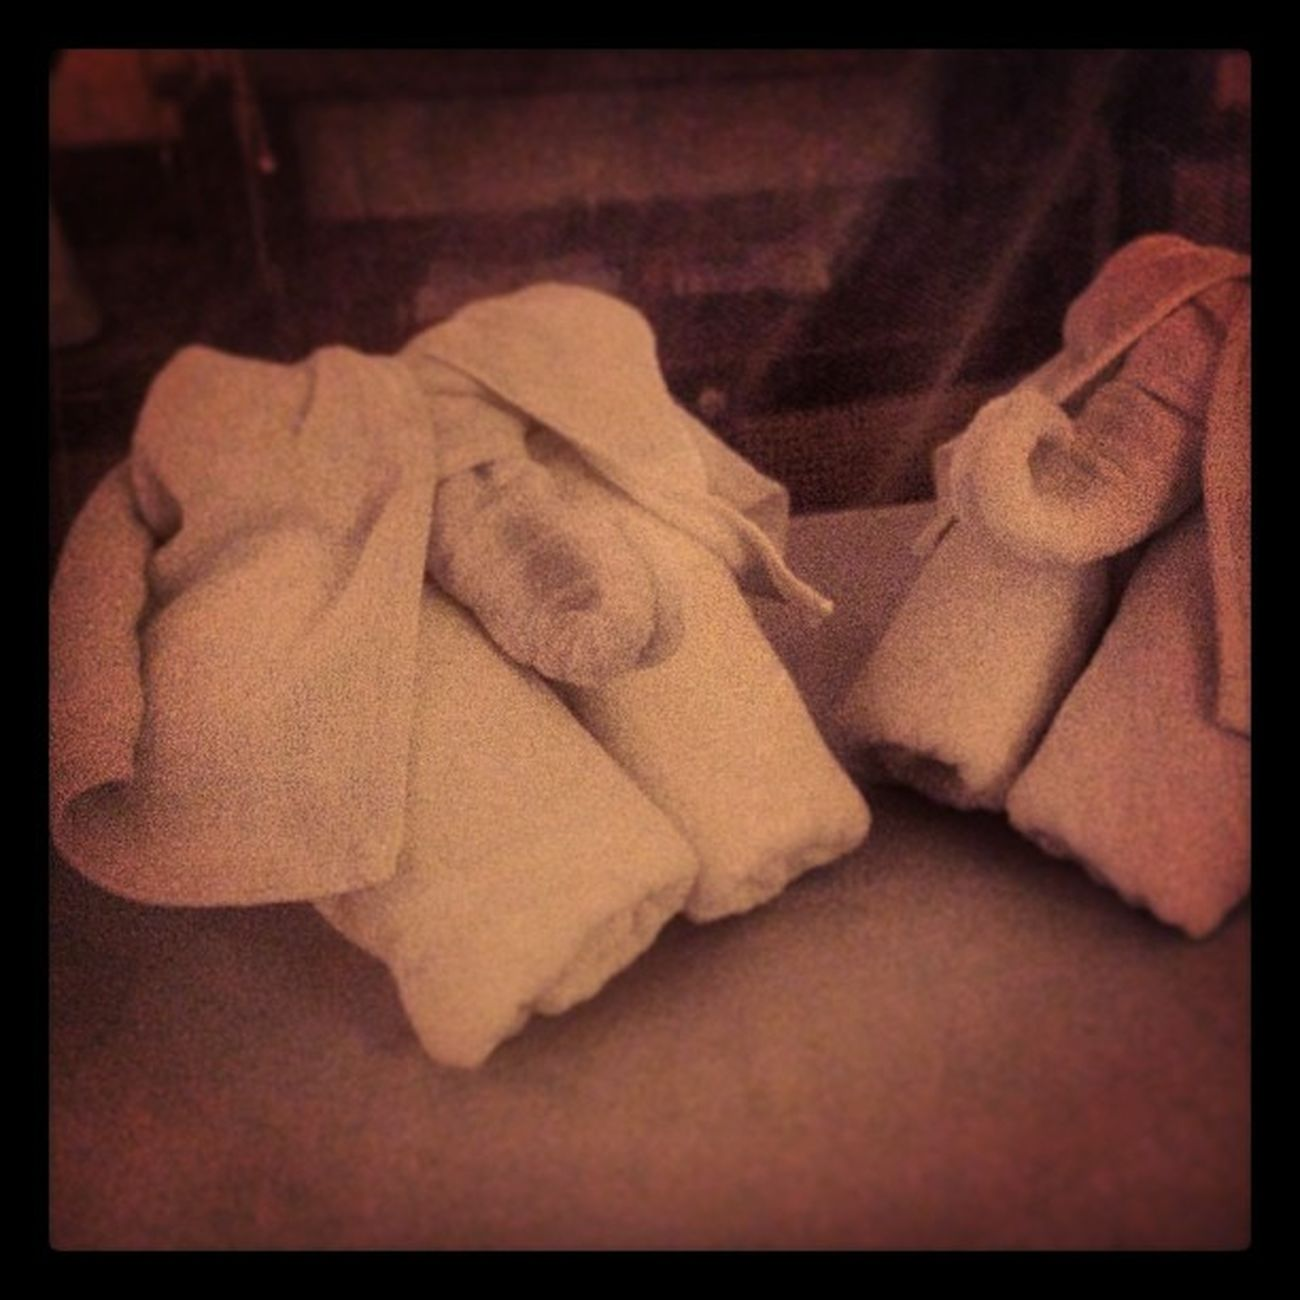 Elephant Towels at Buddyhotel Kosamui